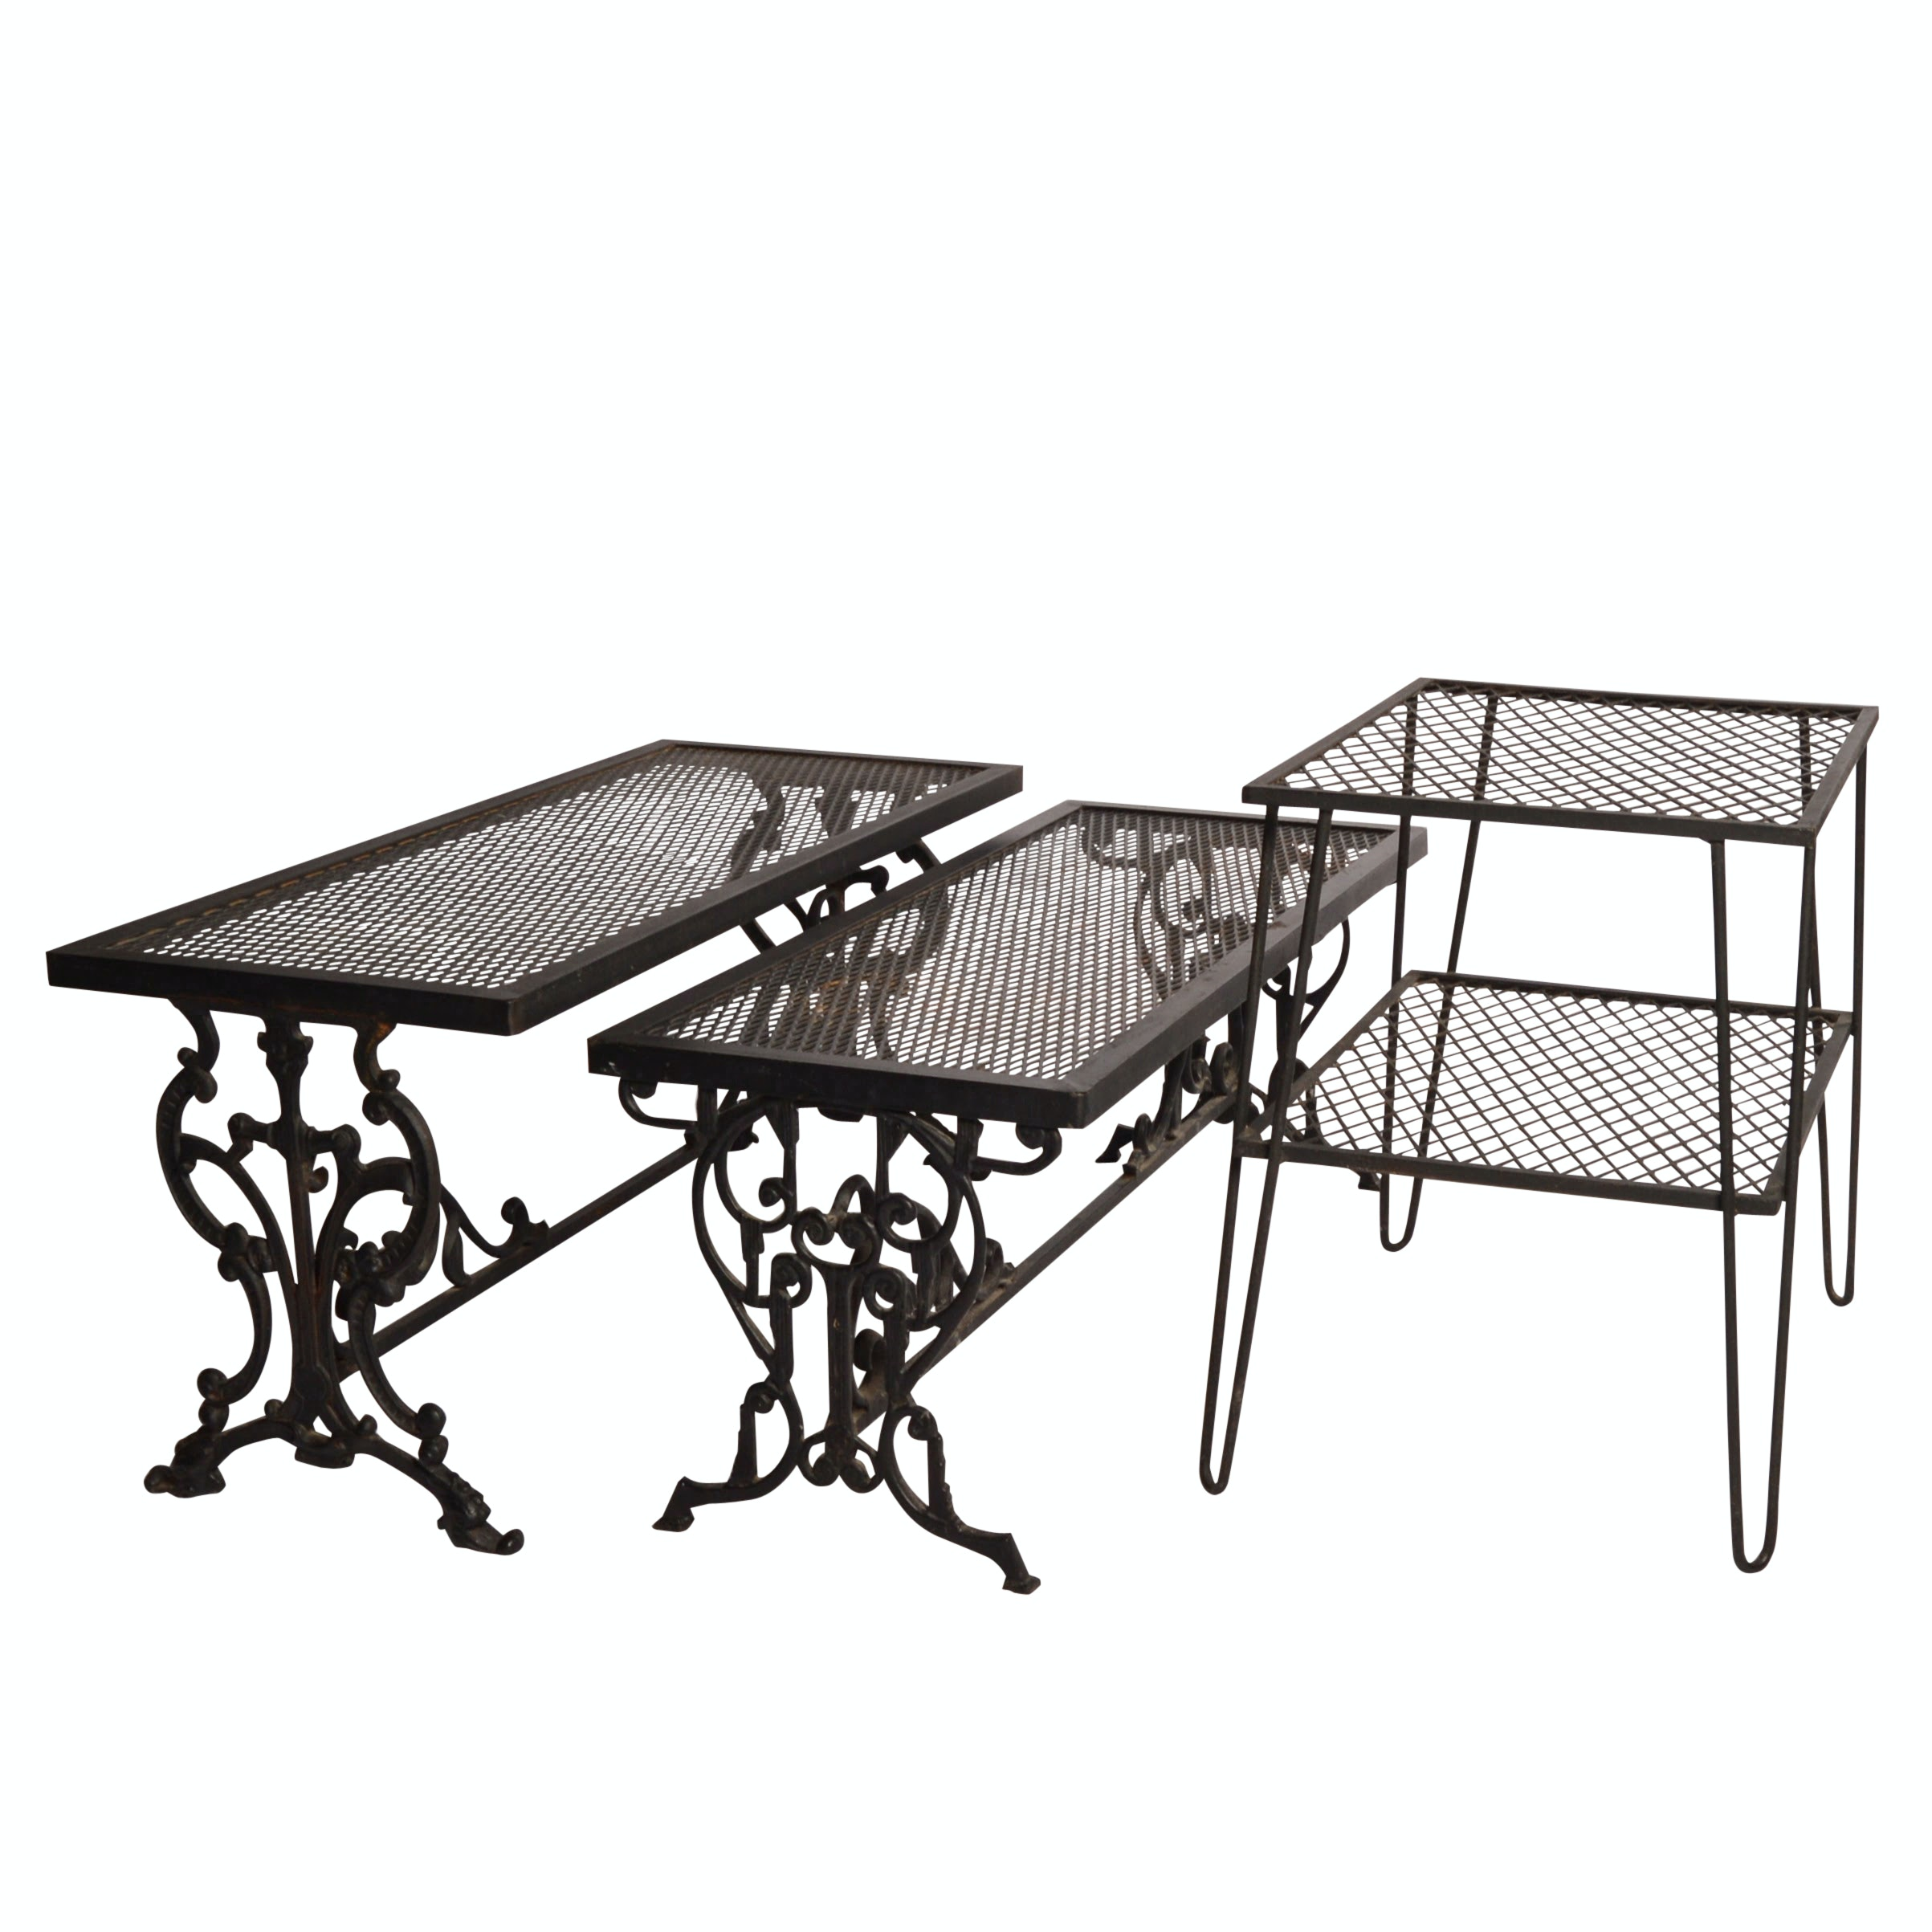 Pair of Cast Iron Benches and a Table